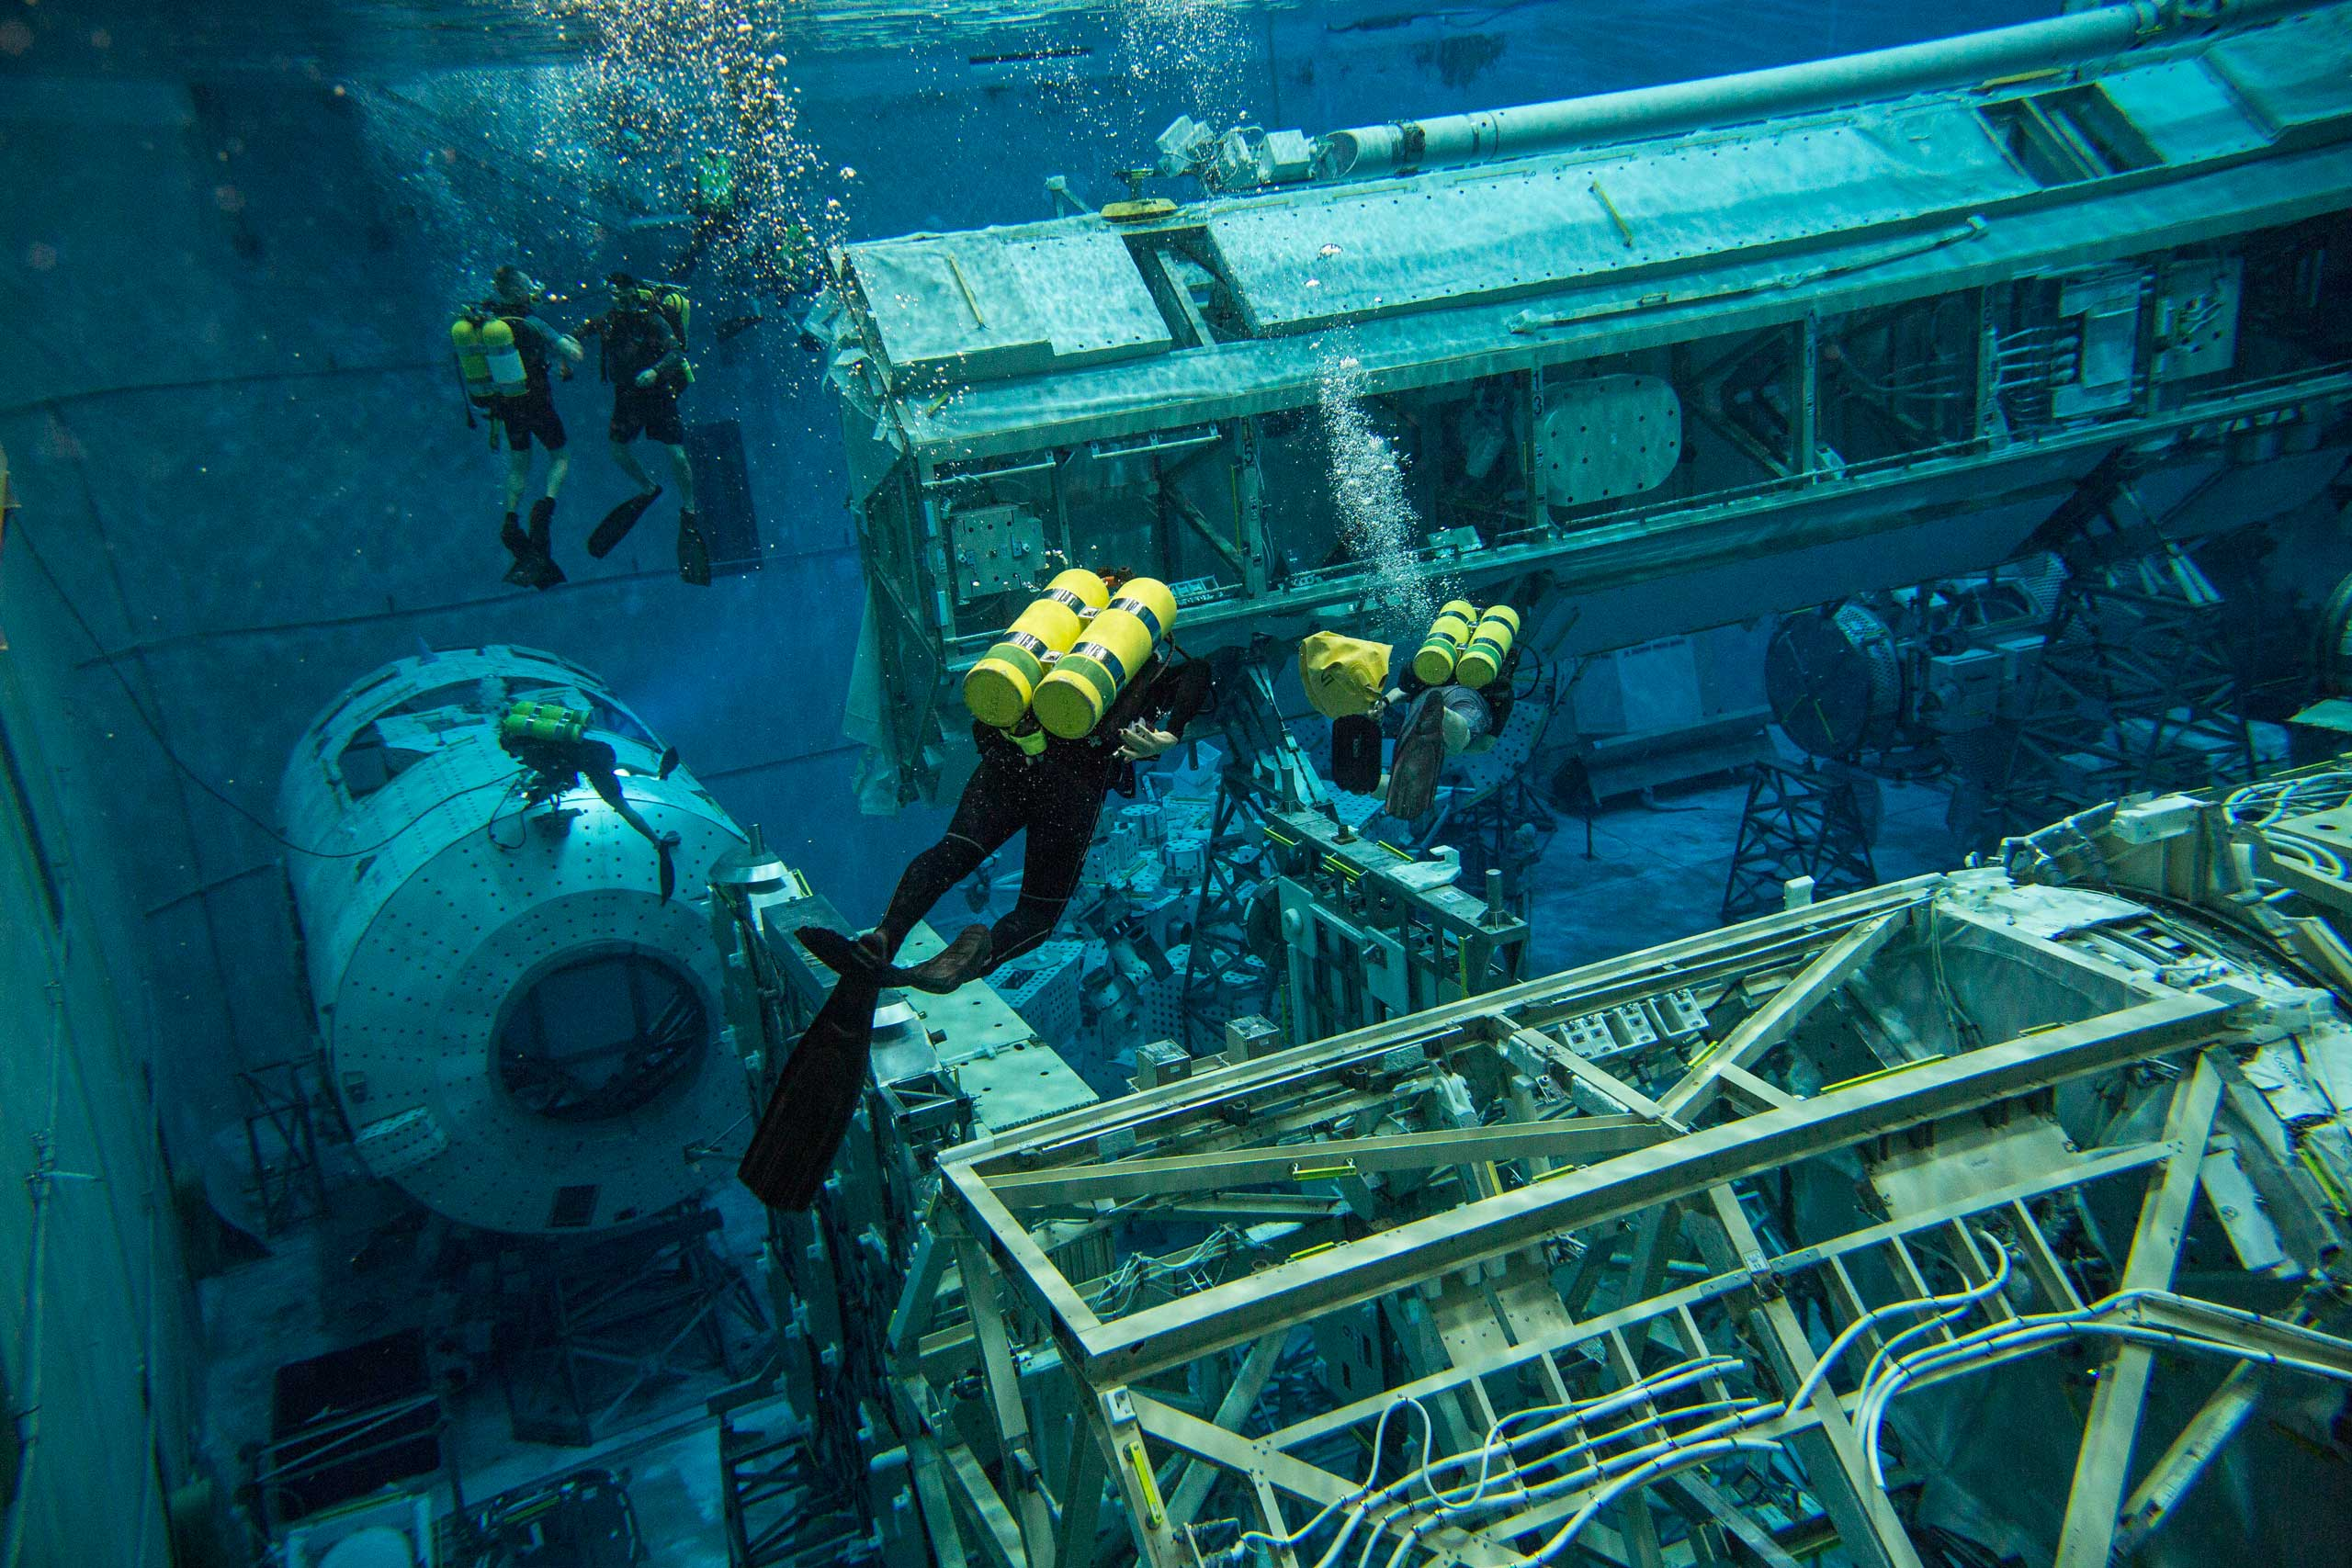 Divers swim toward an underwater replica of the International Space Station in Houston on Feb 3, 2015. Astronauts train for spacewalks by wearing their spacesuit in the world's largest pool, at NASA's Neutral Buoyancy Lab in Houston.